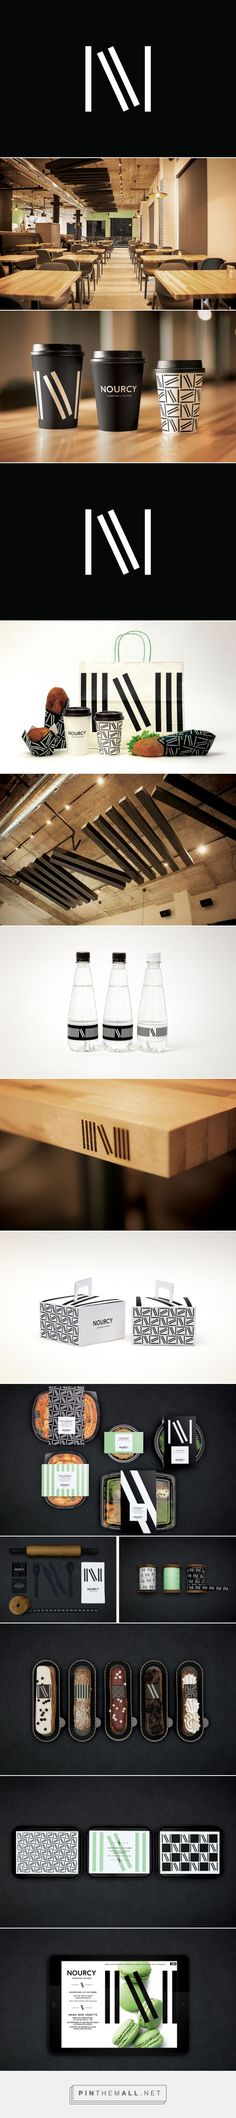 New Brand Identity for Nourcy by lg2boutique — BP&O - created via http://pinthemall.net